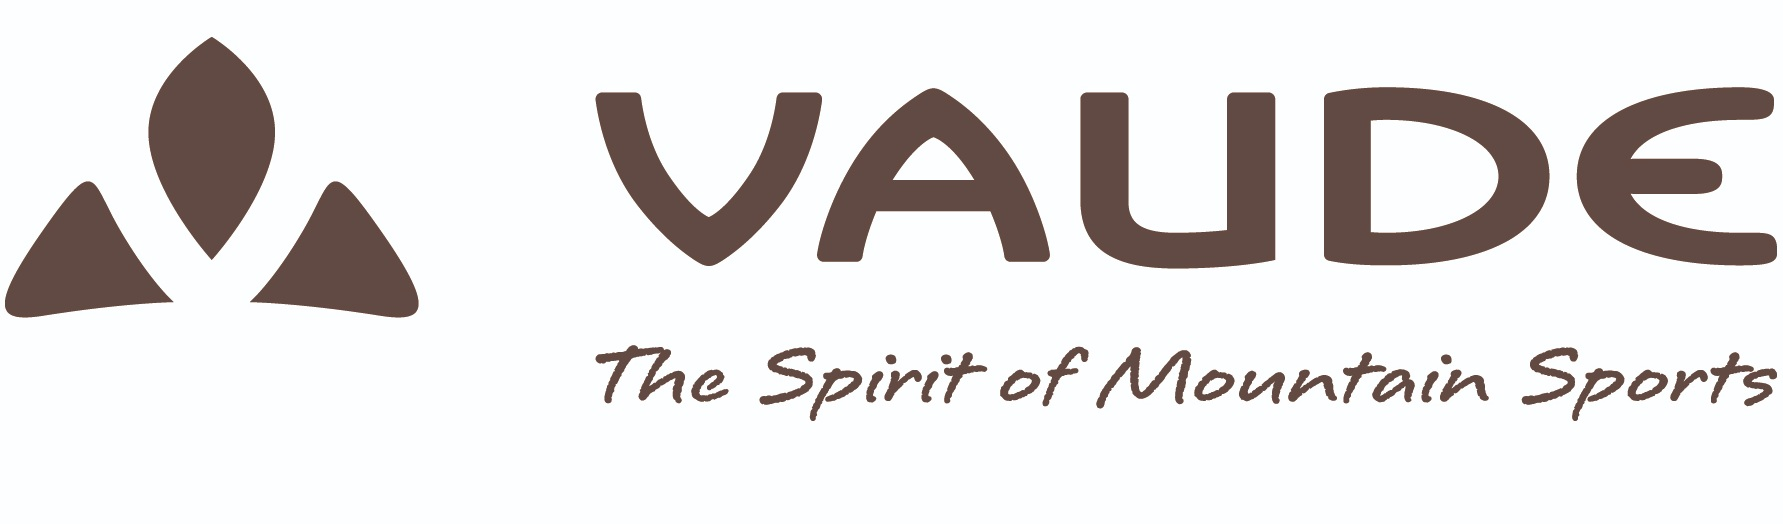 VAUDE_Logo+with+Claim.jpg